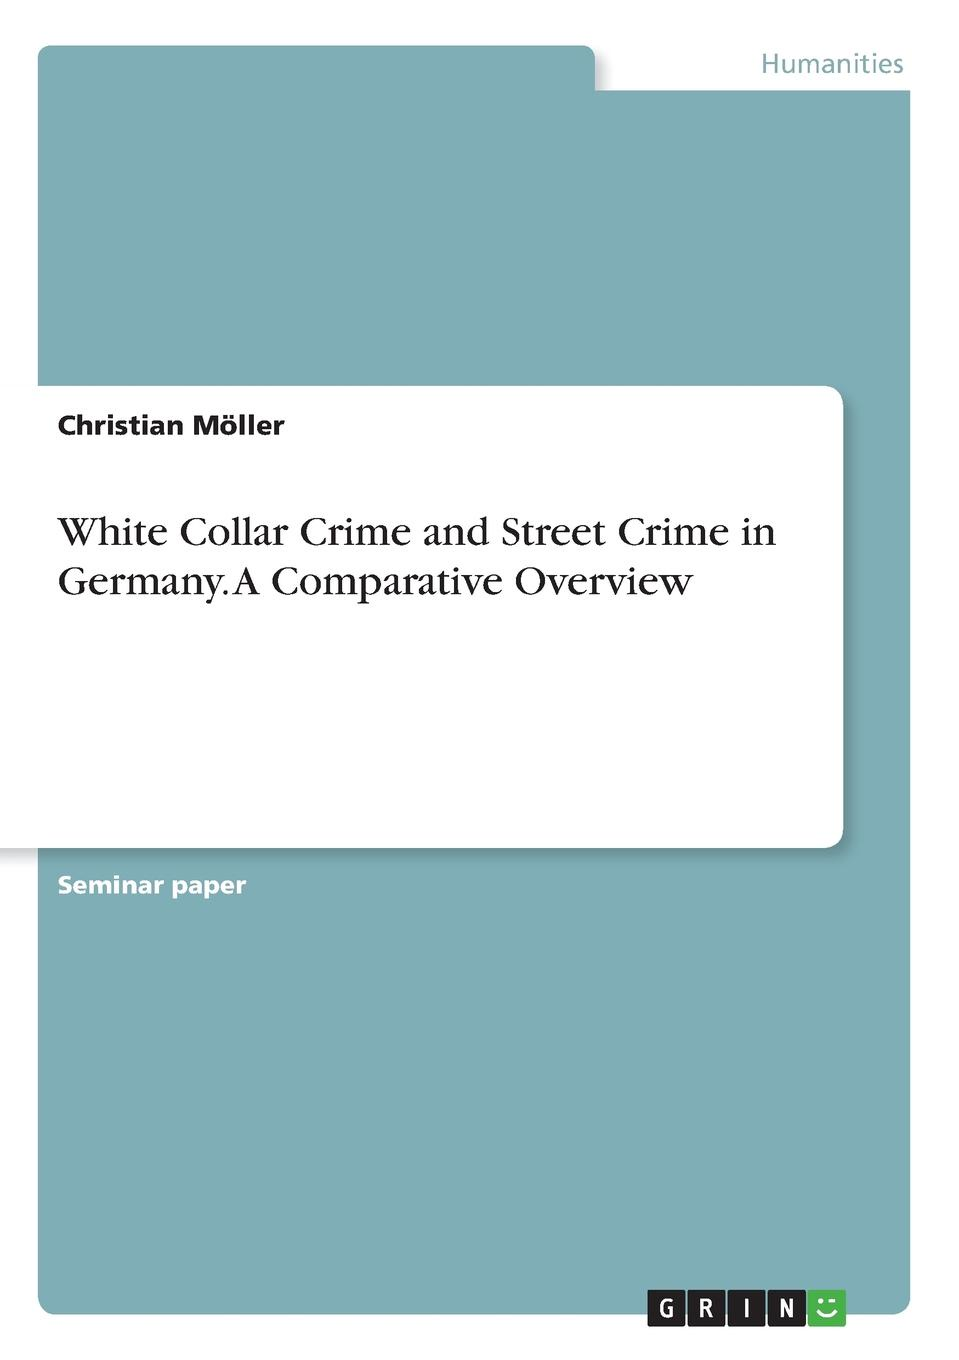 Christian Möller White Collar Crime and Street Crime in Germany. A Comparative Overview tooth of crime